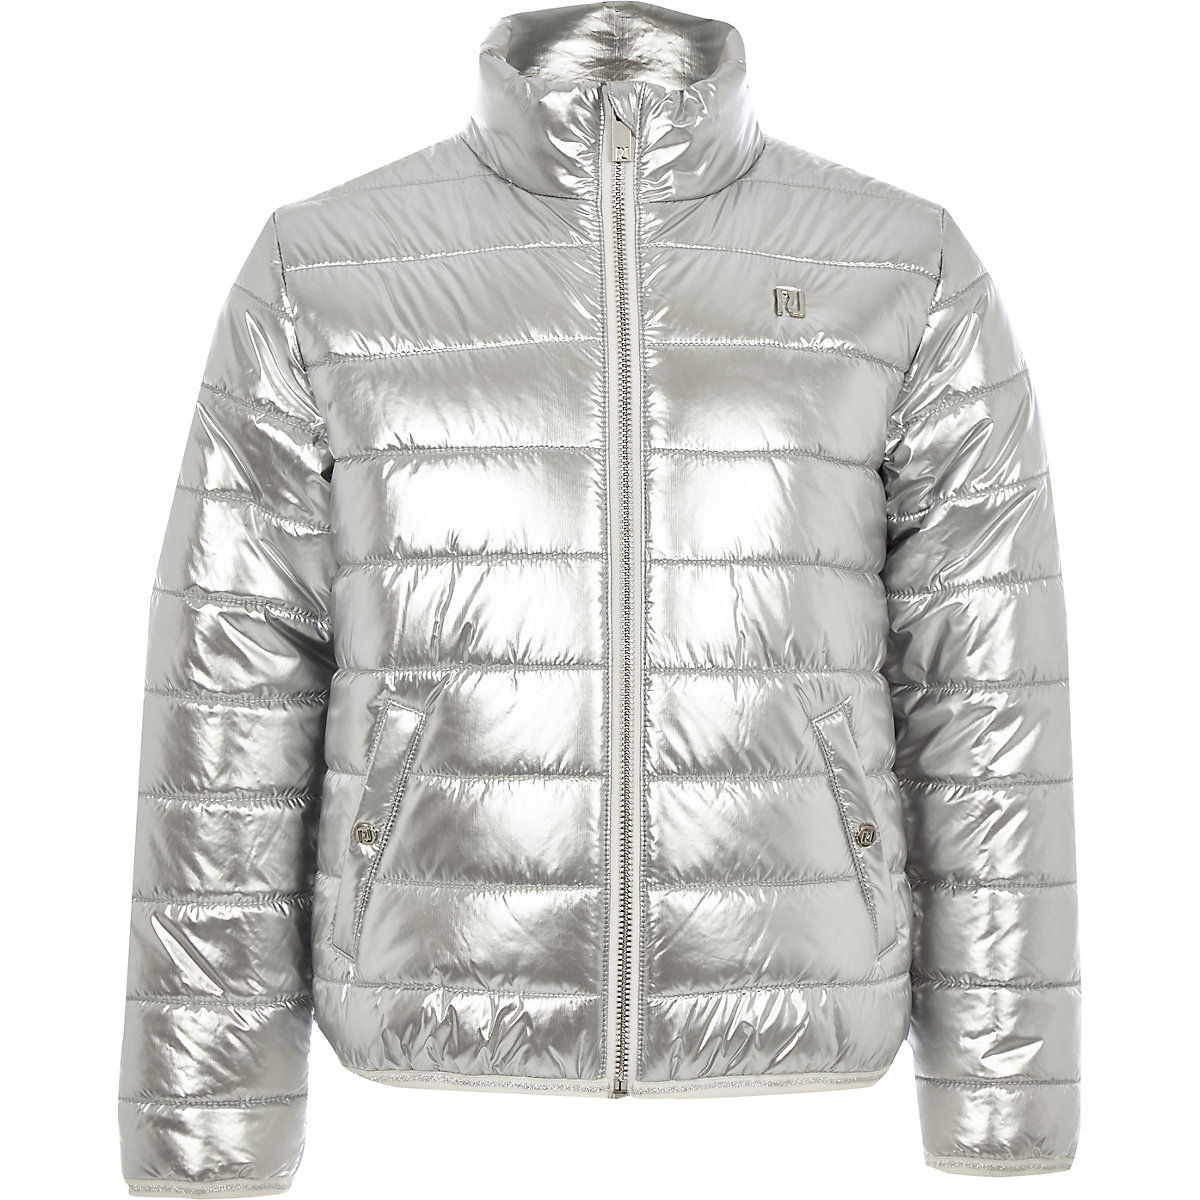 Girls silver metallic bomber jacket